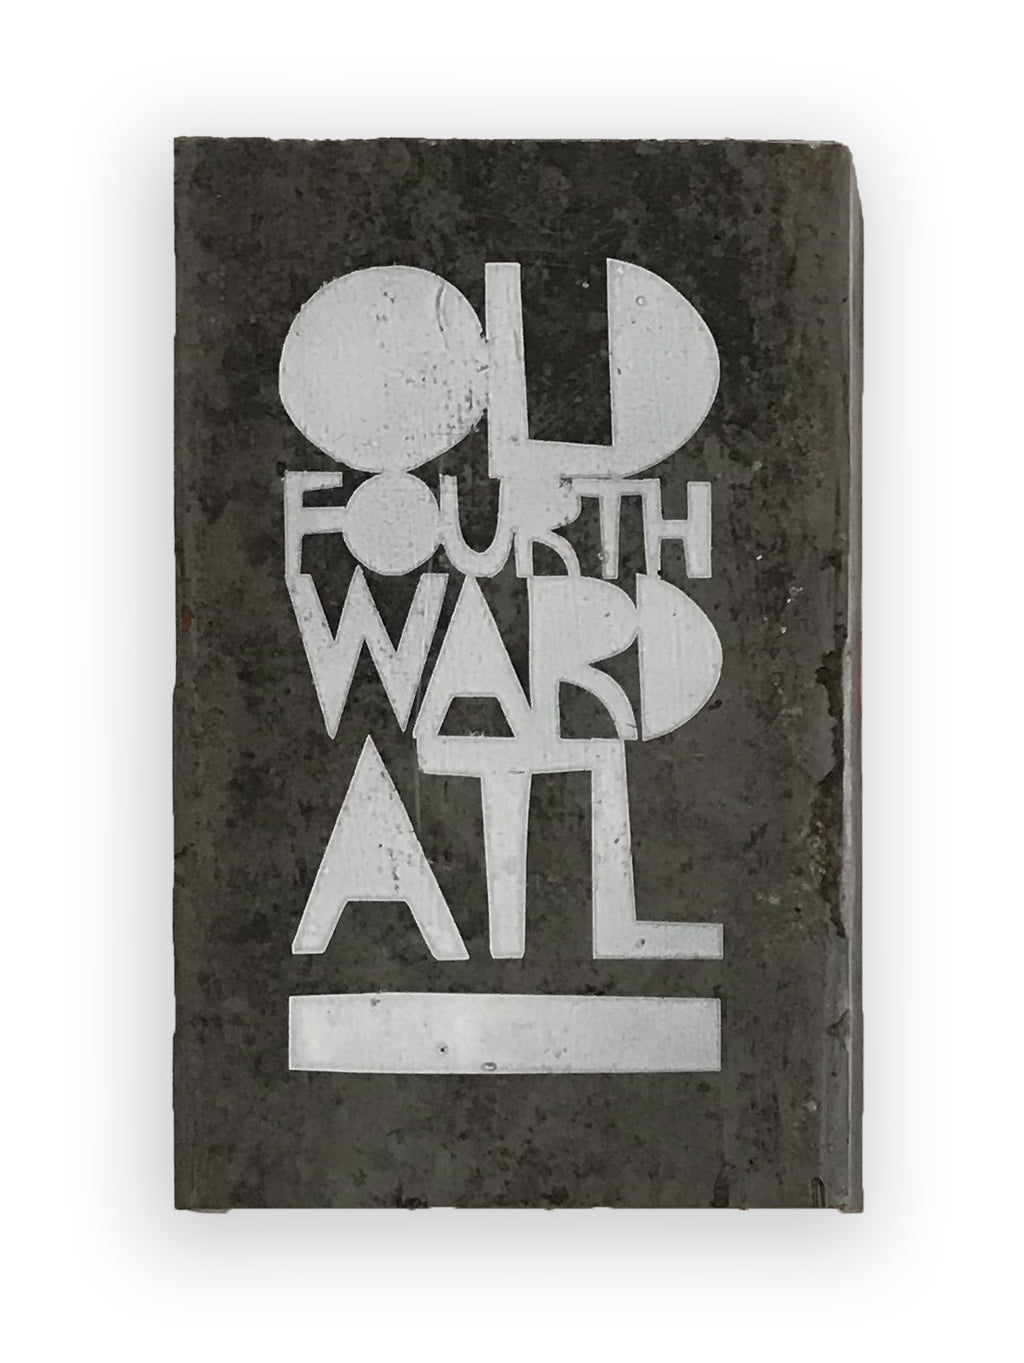 OLD FORTH WARD - Southern Dialect Series